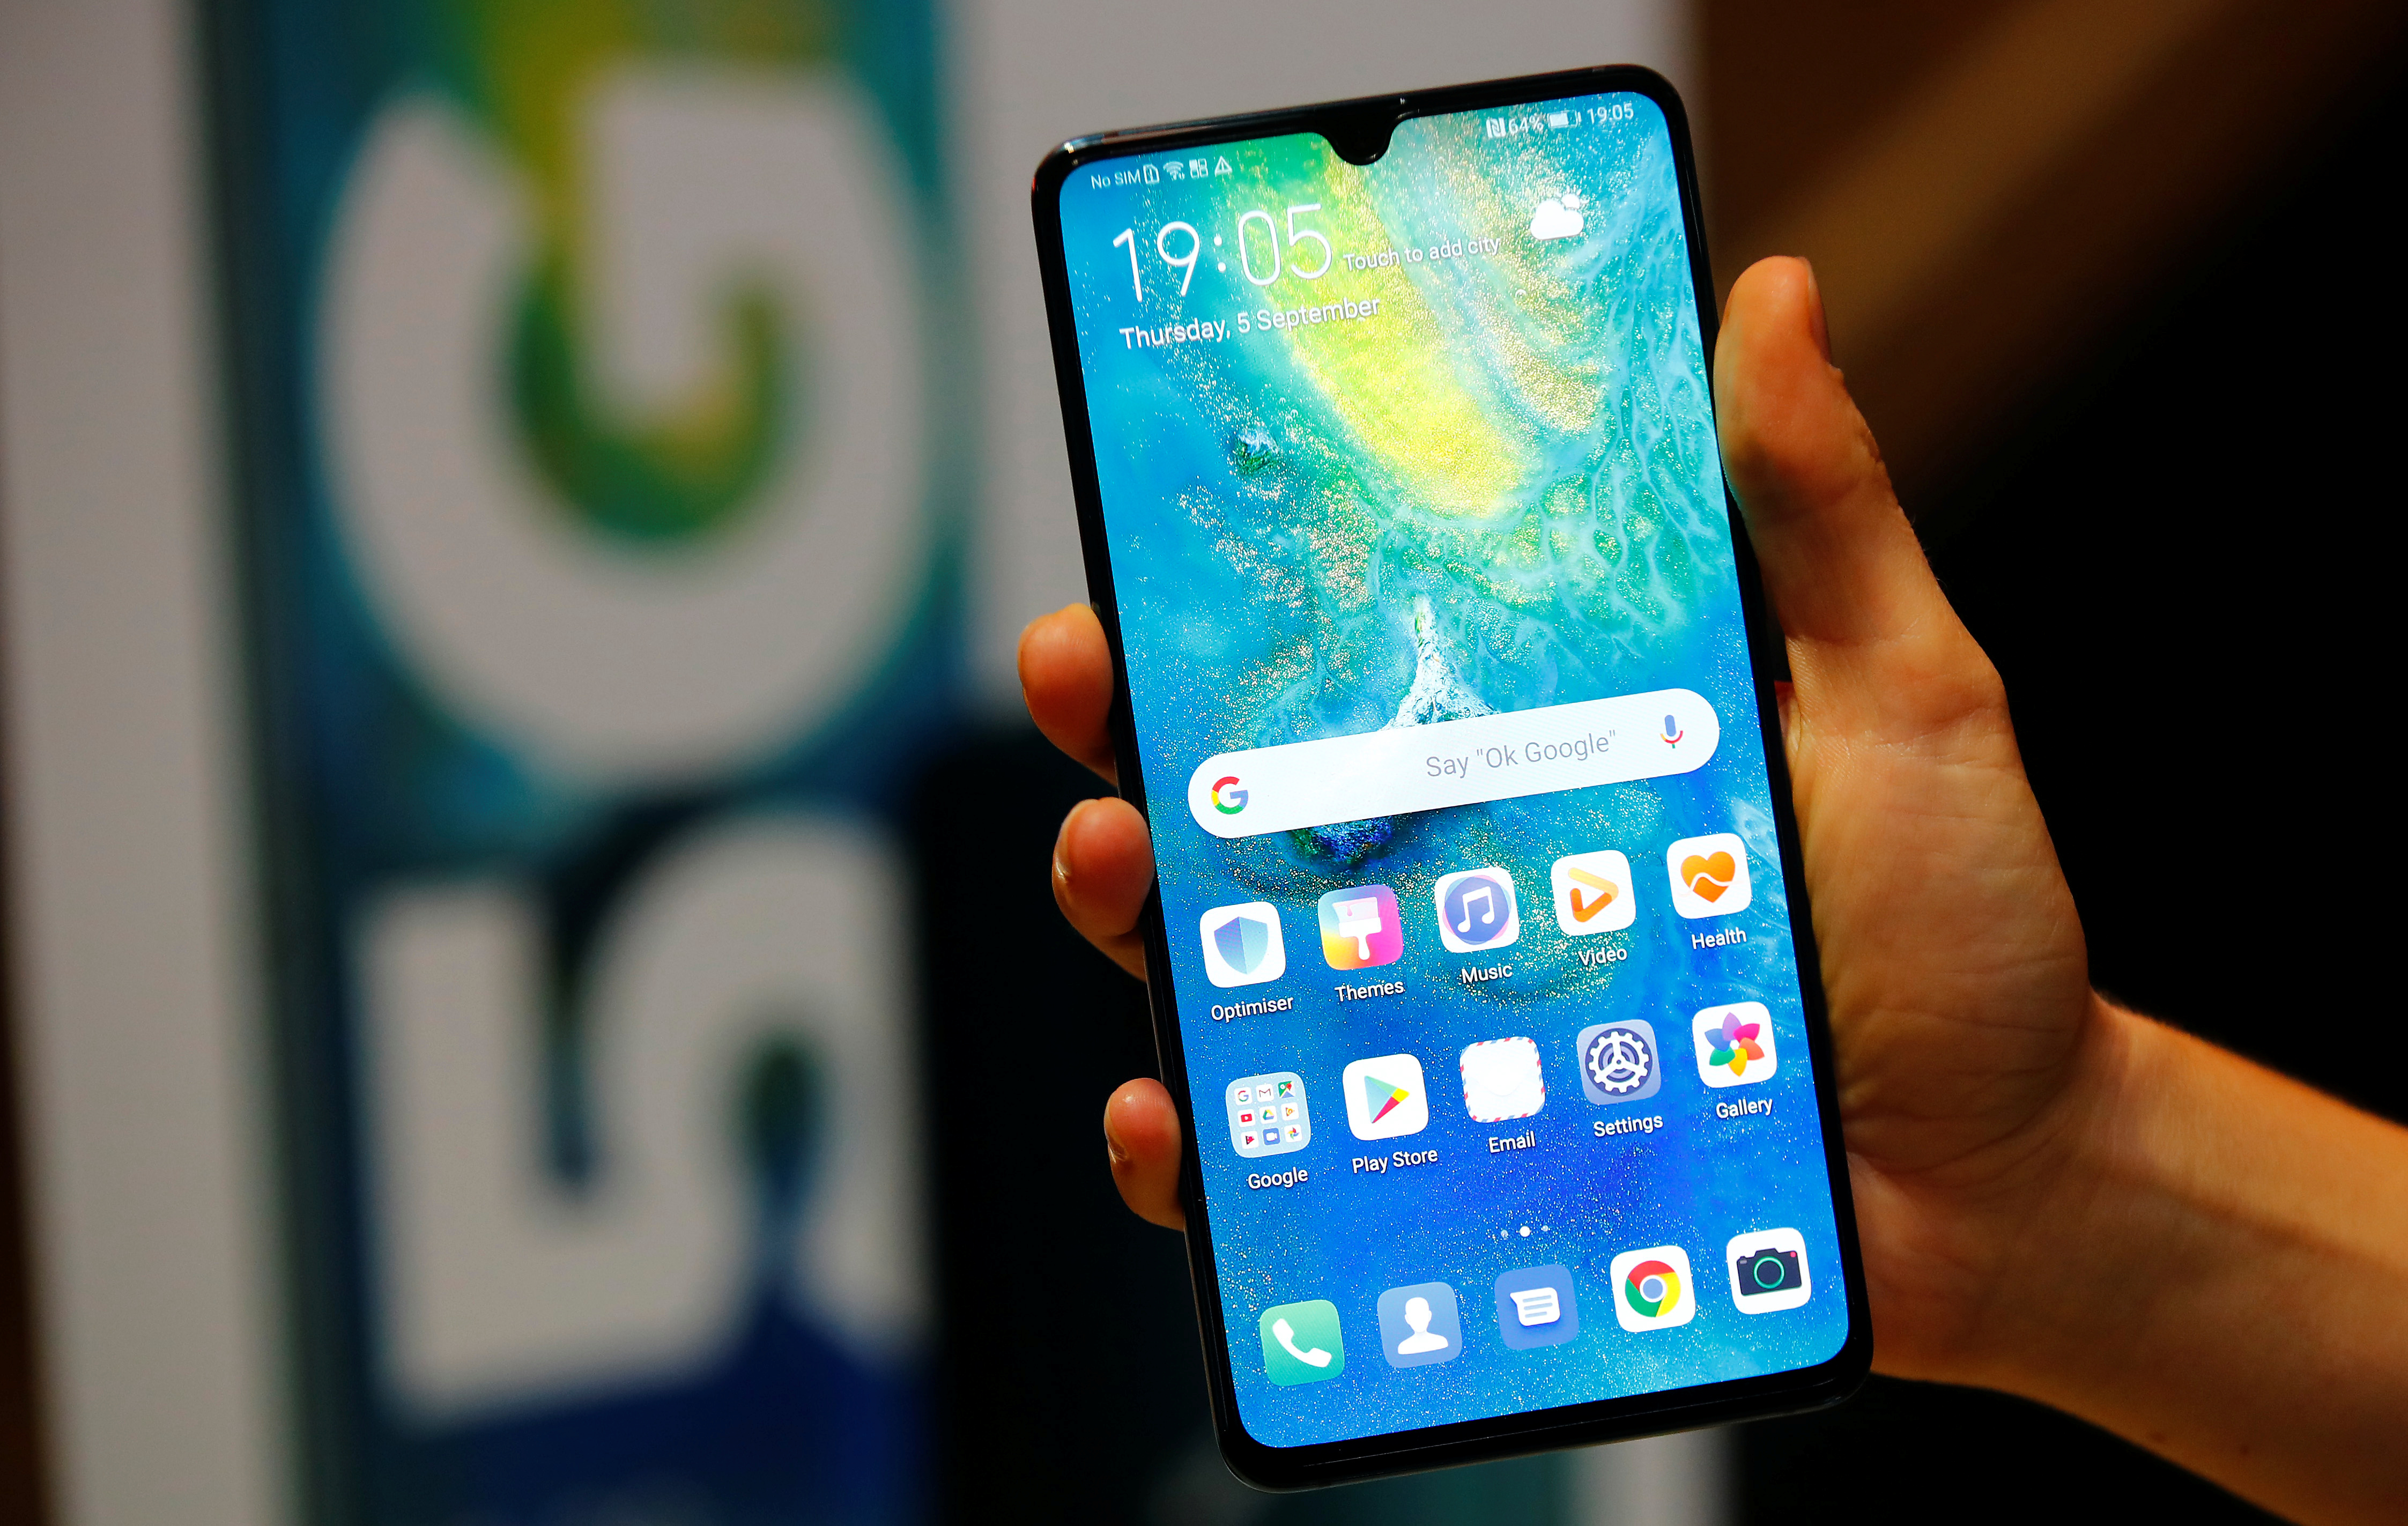 Global Smart Phone Sales Recovers but Dips by 5.7% in Q3 2020